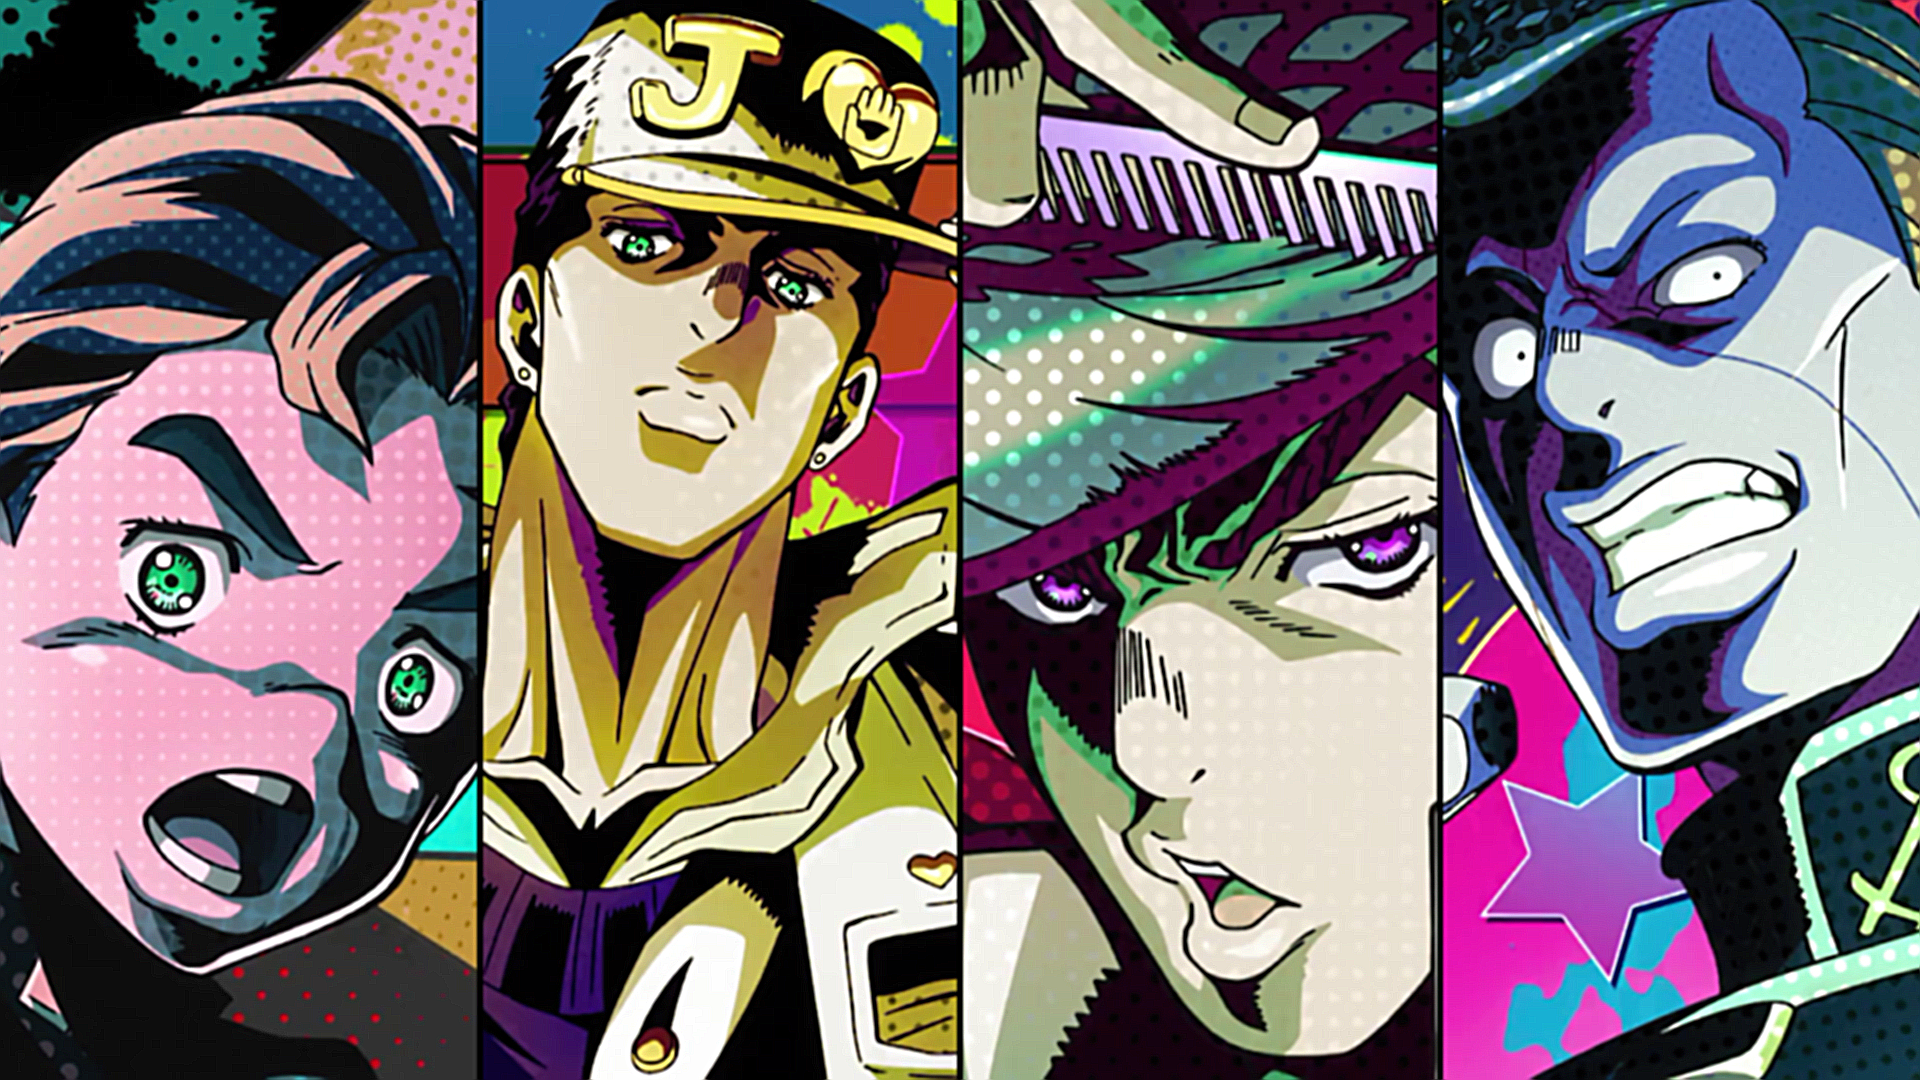 165 Josuke Higashikata Hd Wallpapers Background Images Wallpaper Abyss